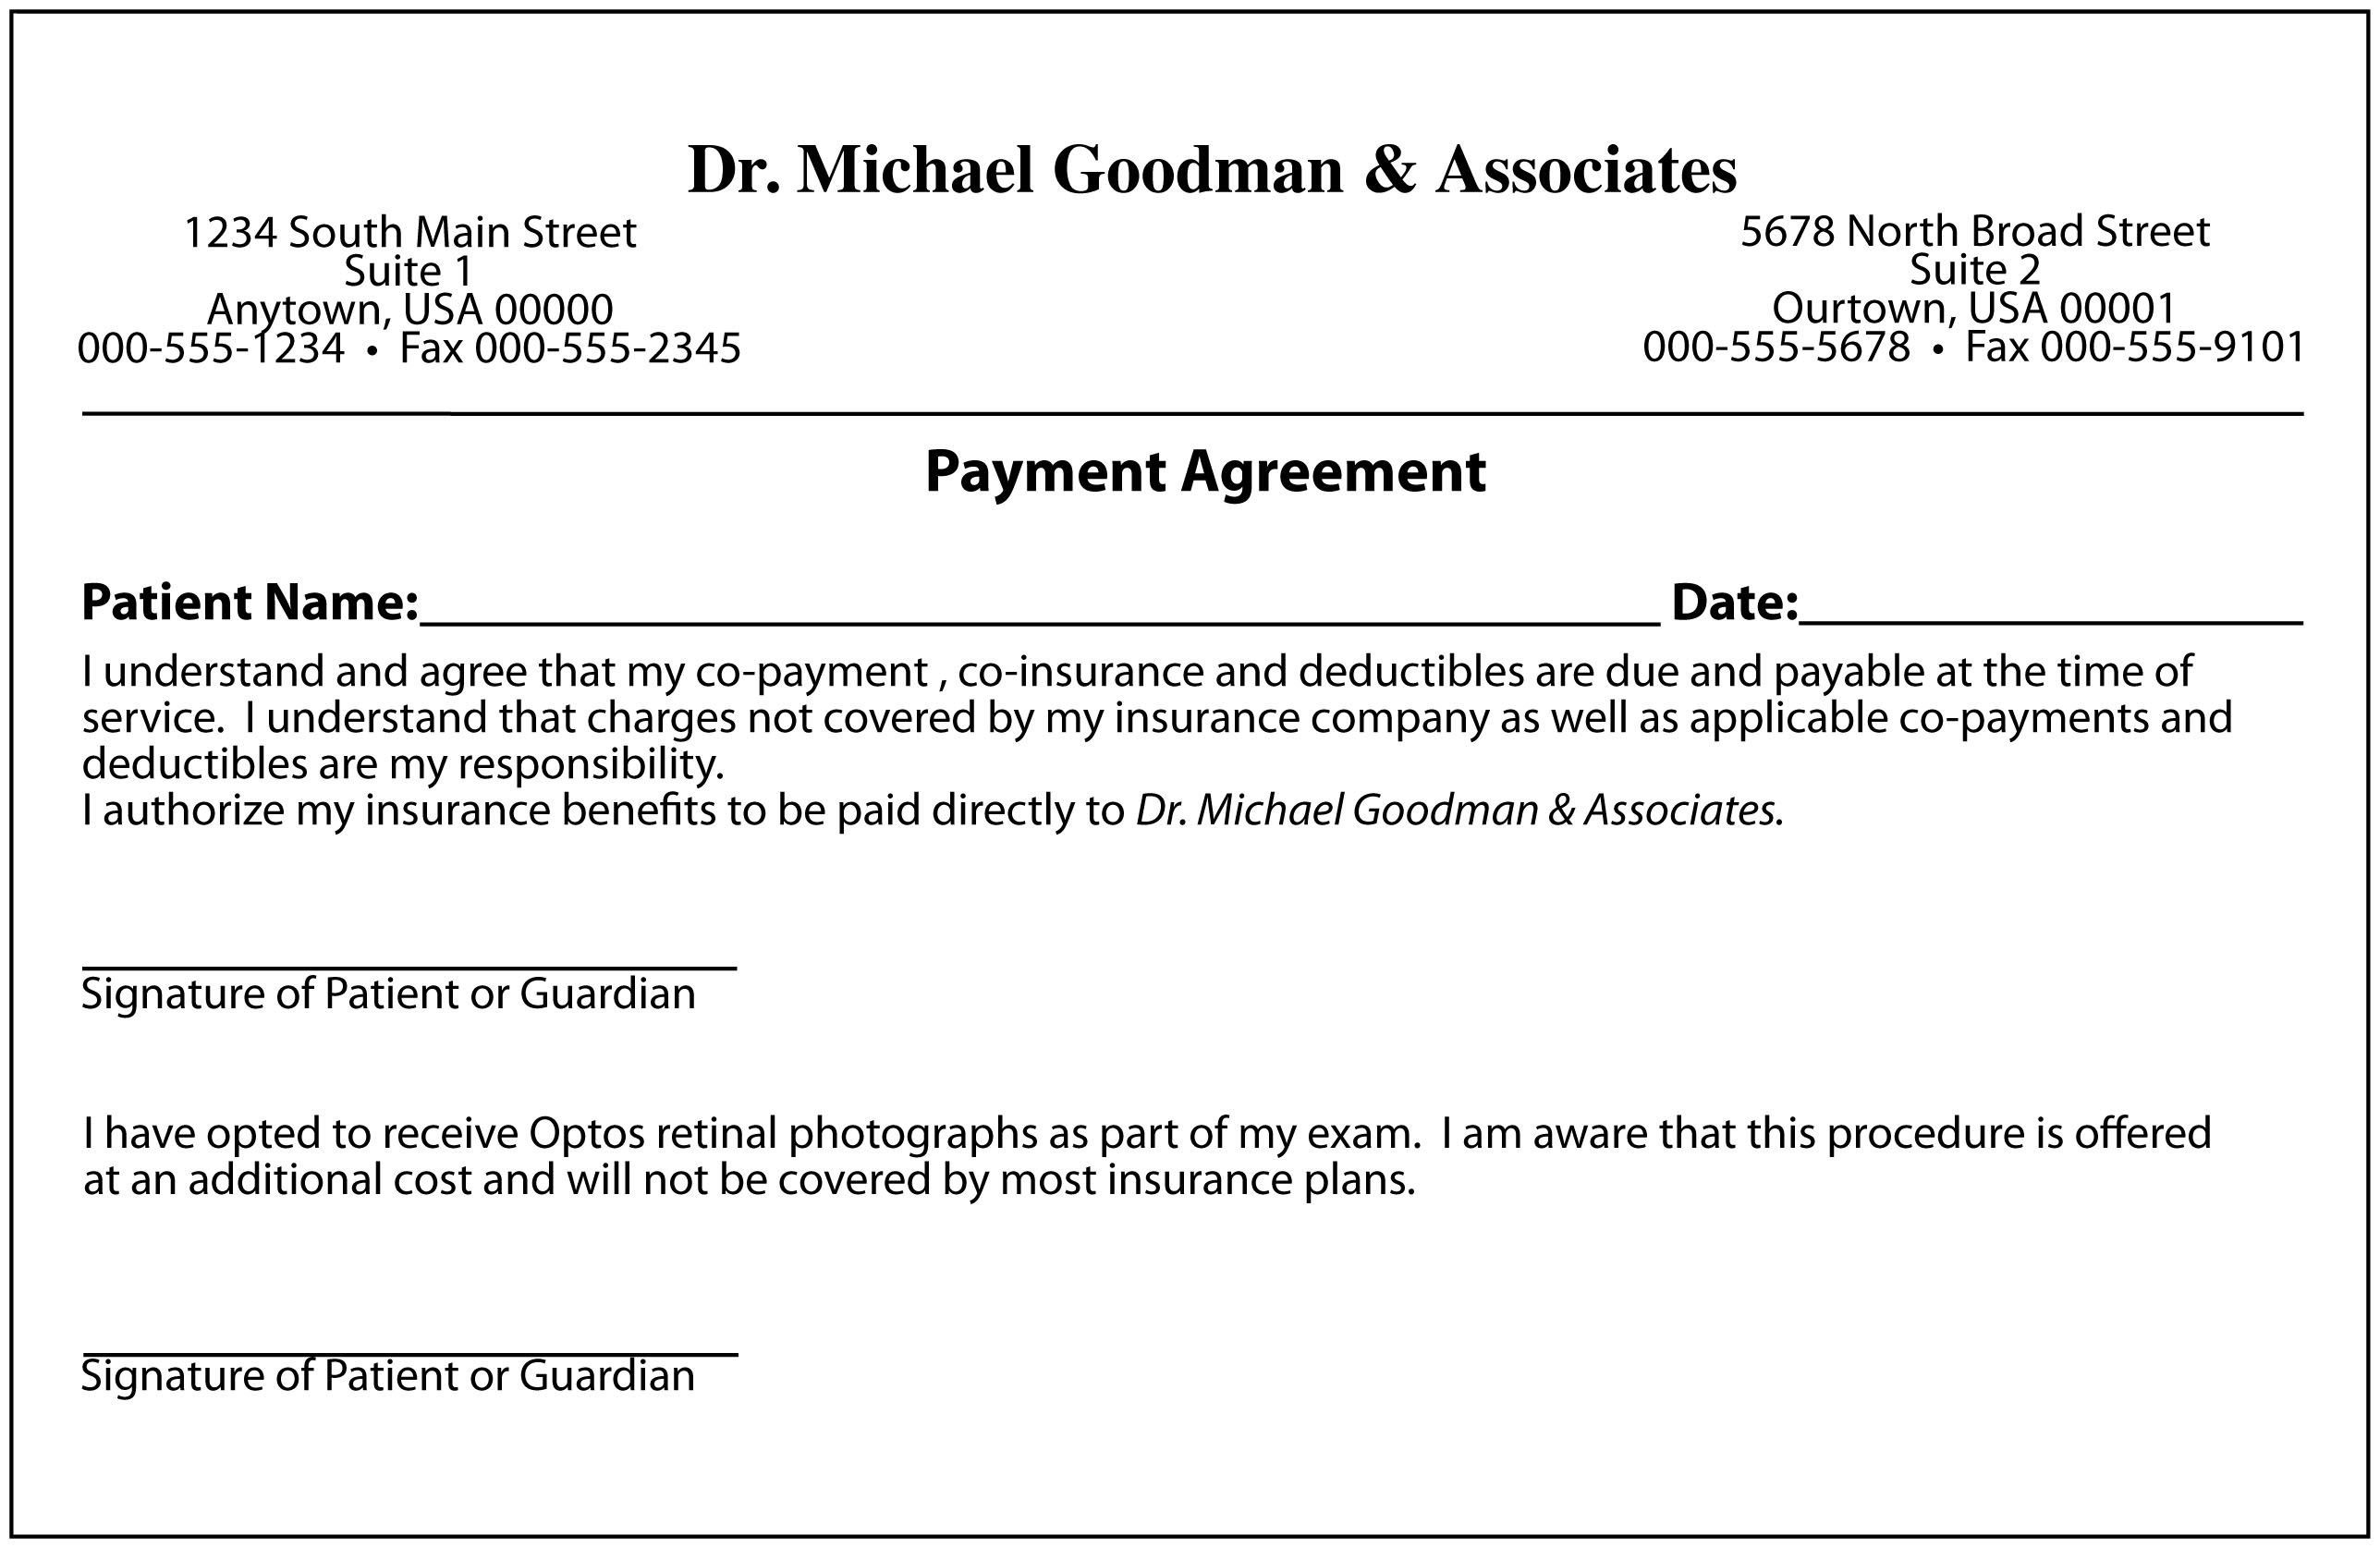 Notes Payable Agreement (installment options will based on